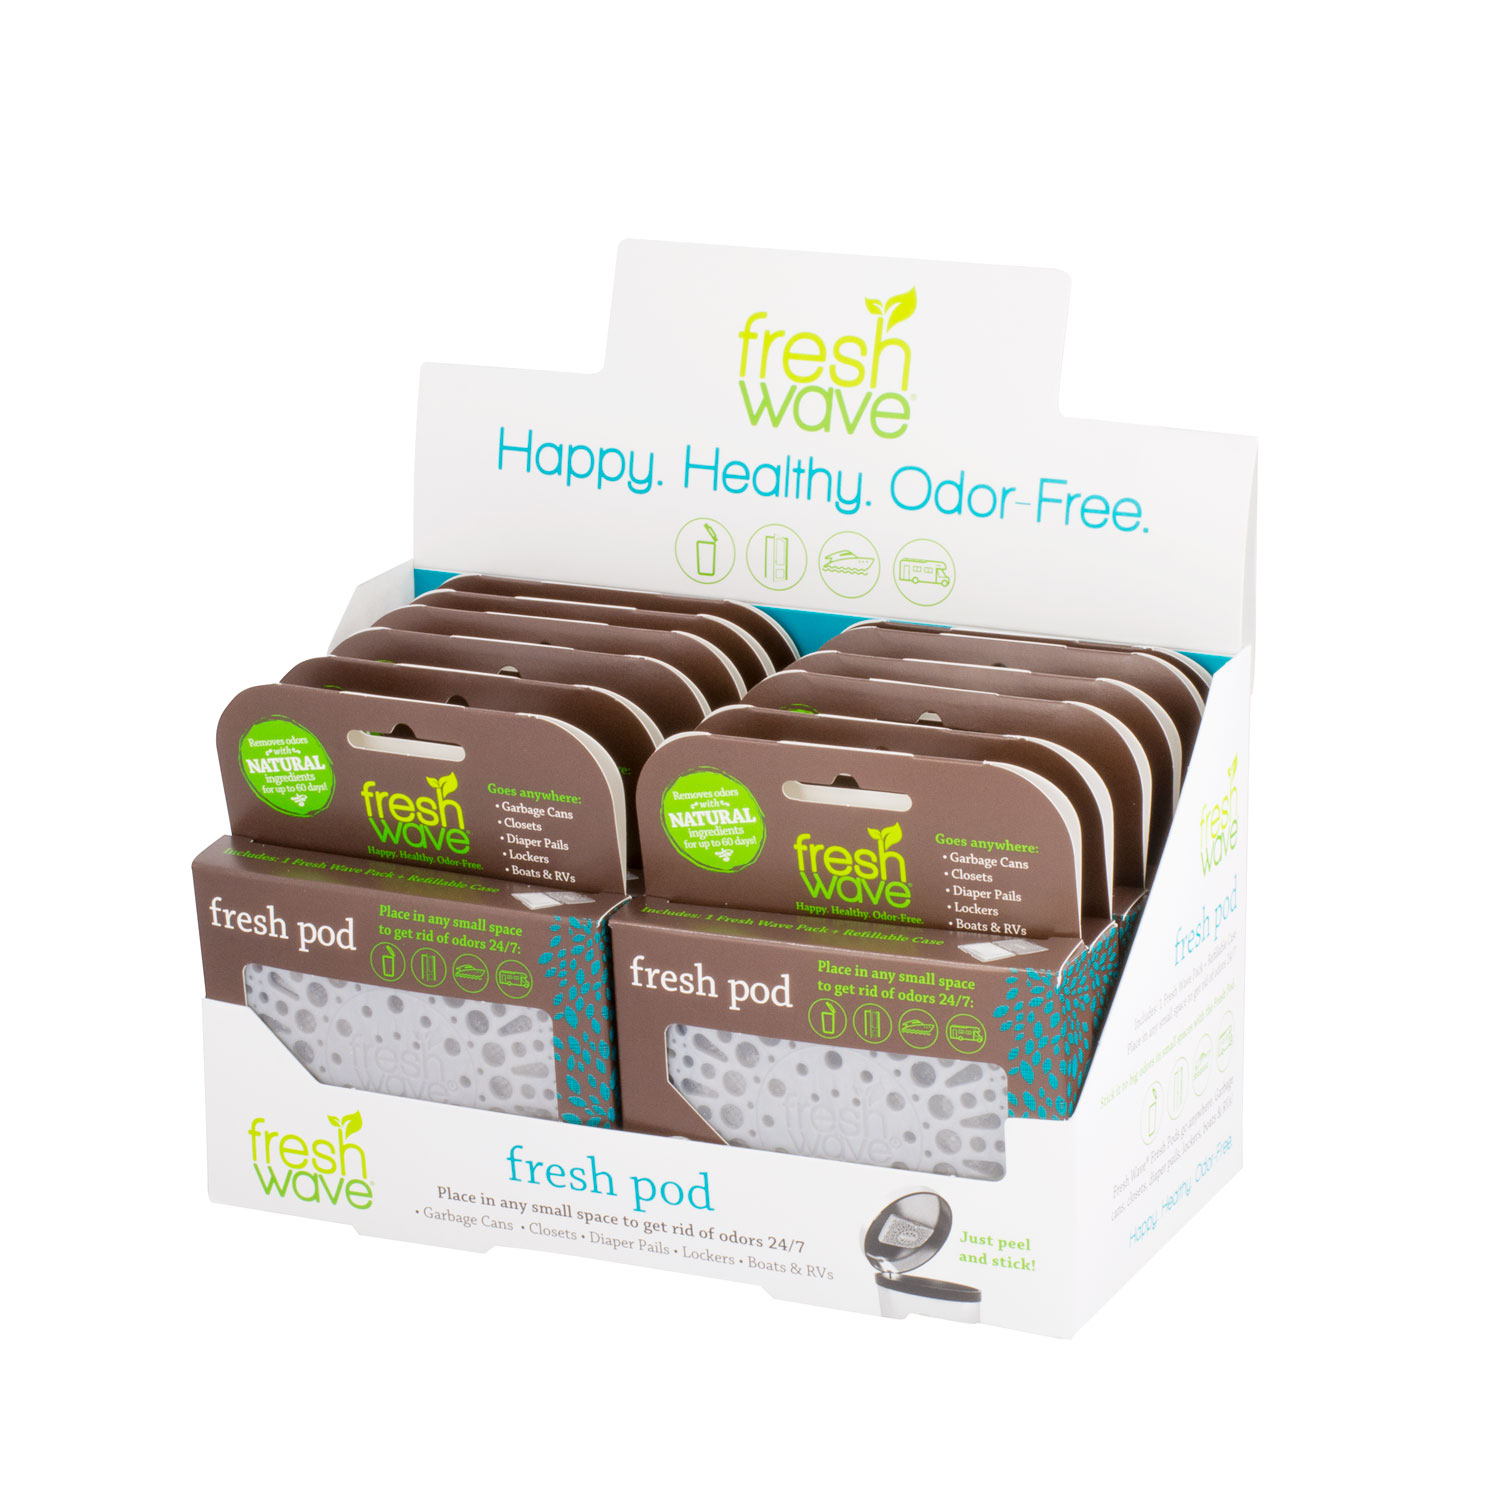 Wave Fresh Pod Odor Eliminator Counter Display